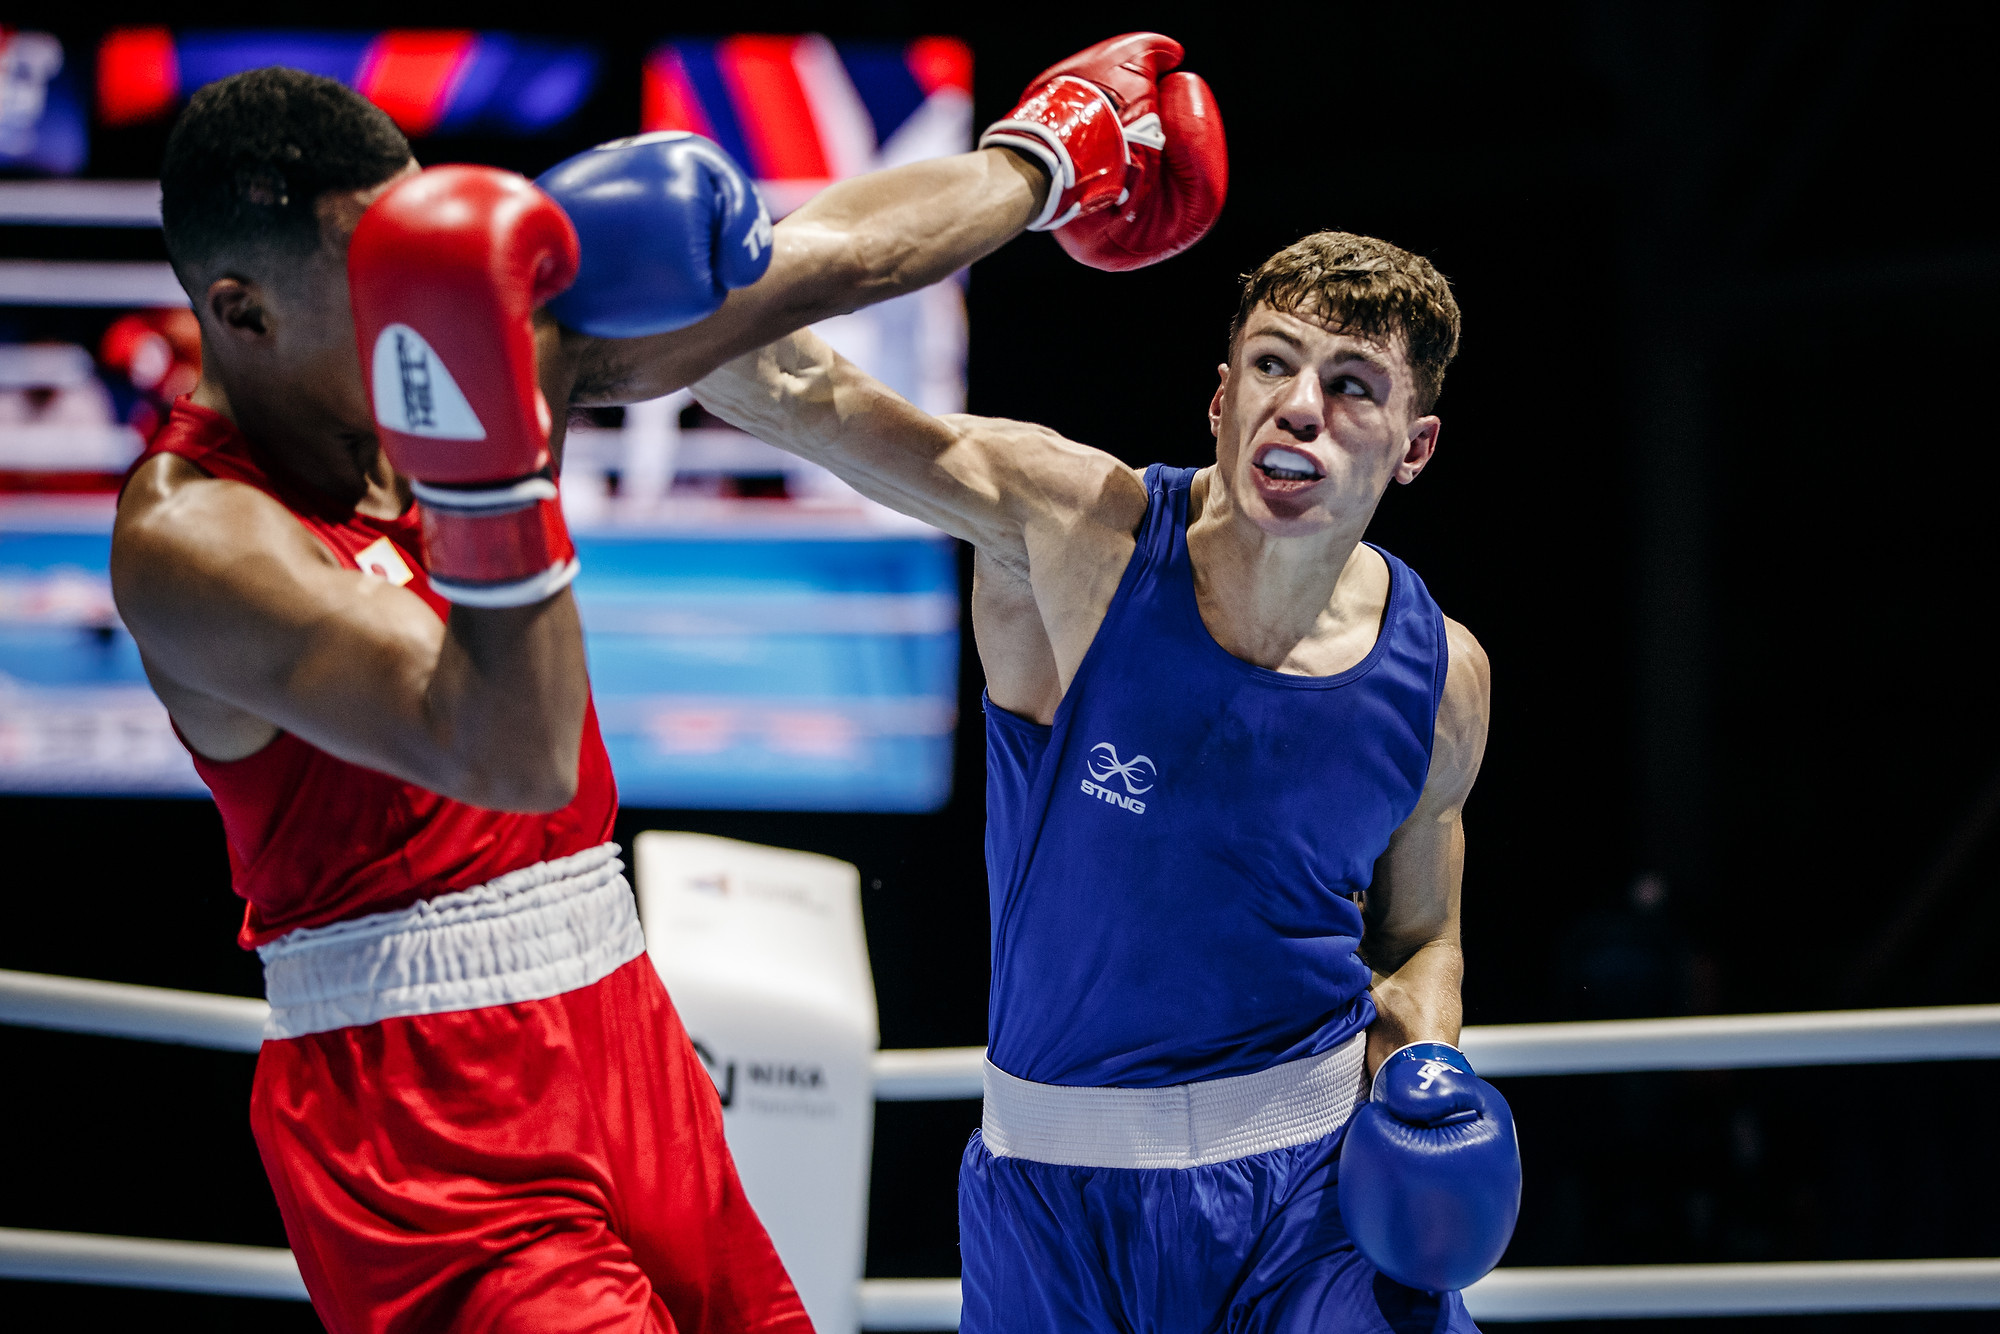 England's European and Commonwealth champion Pat McCormack edged past Sewonrets Okazawa of Japan 3-2 to reach the welterweight semi-final ©Yekaterinburg 2019